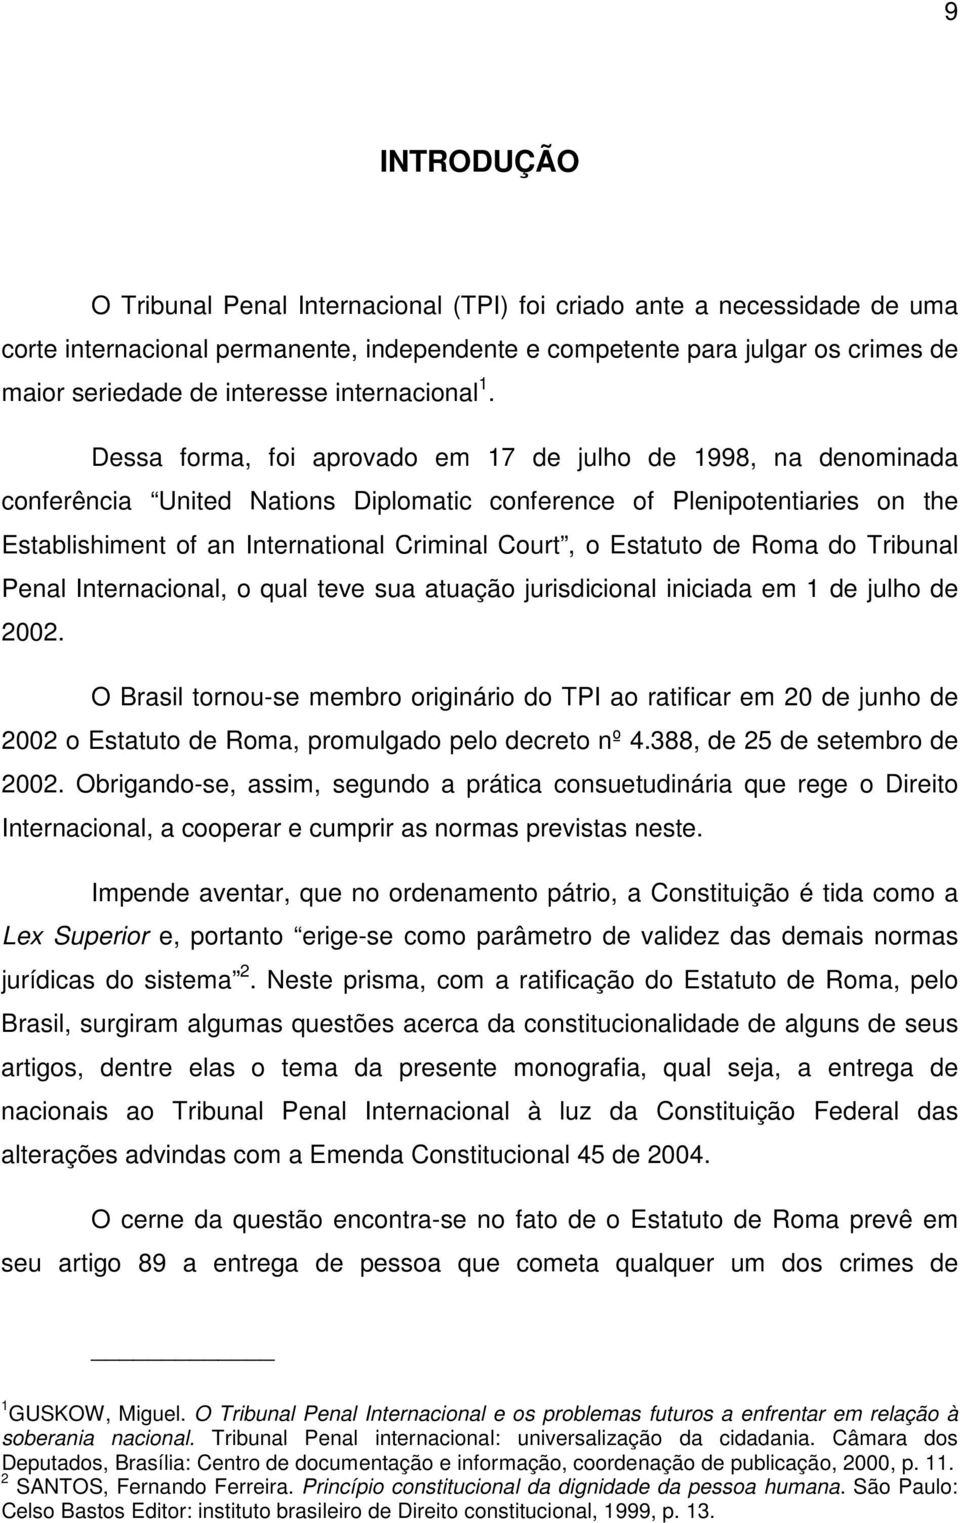 Dessa forma, foi aprovado em 17 de julho de 1998, na denominada conferência United Nations Diplomatic conference of Plenipotentiaries on the Establishiment of an International Criminal Court, o